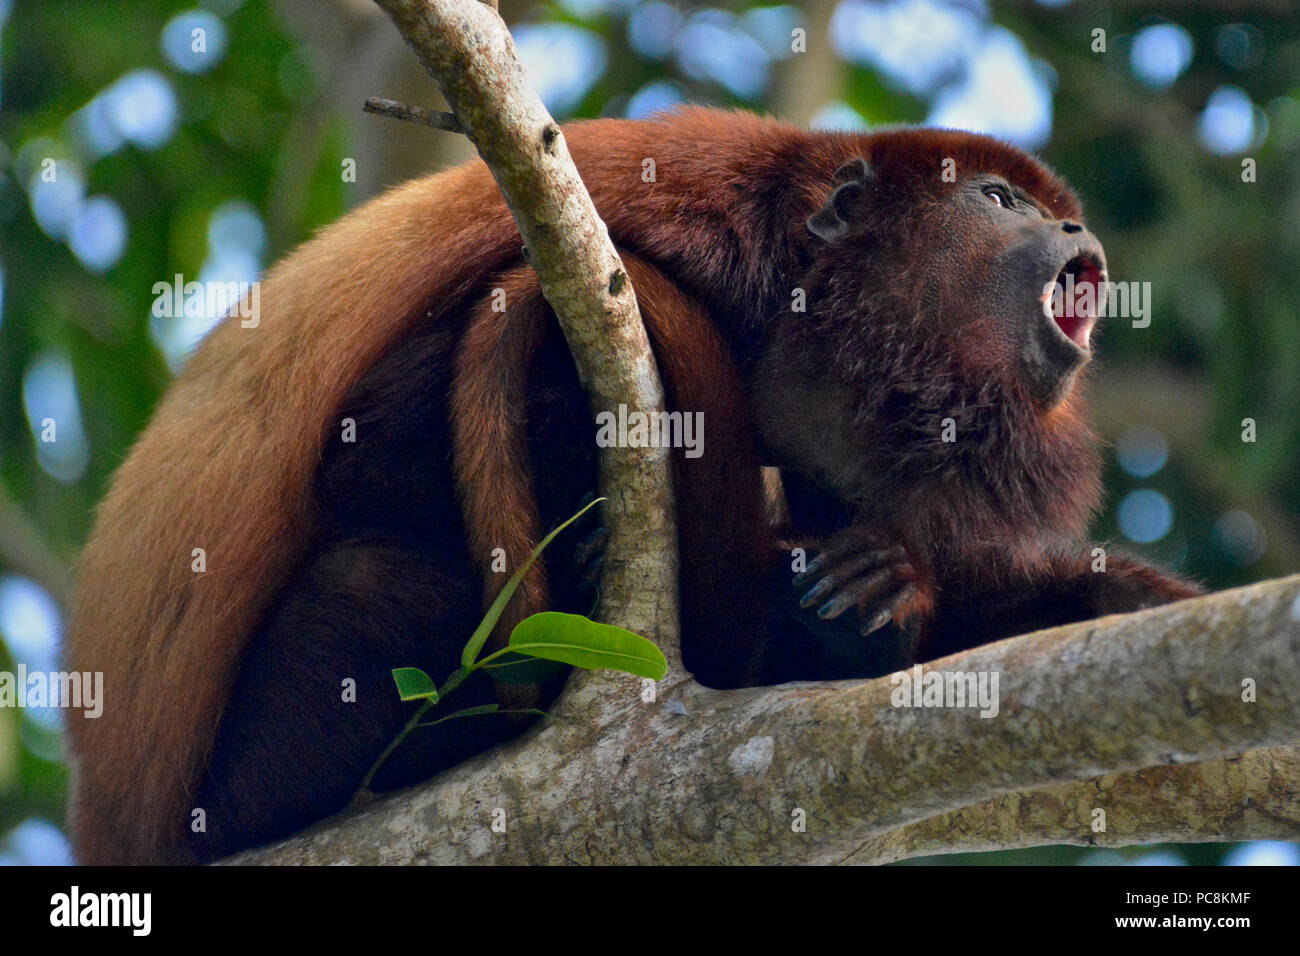 A Red Howler Monkey, Alouatta seniculus, howls on a branch. Stock Photo